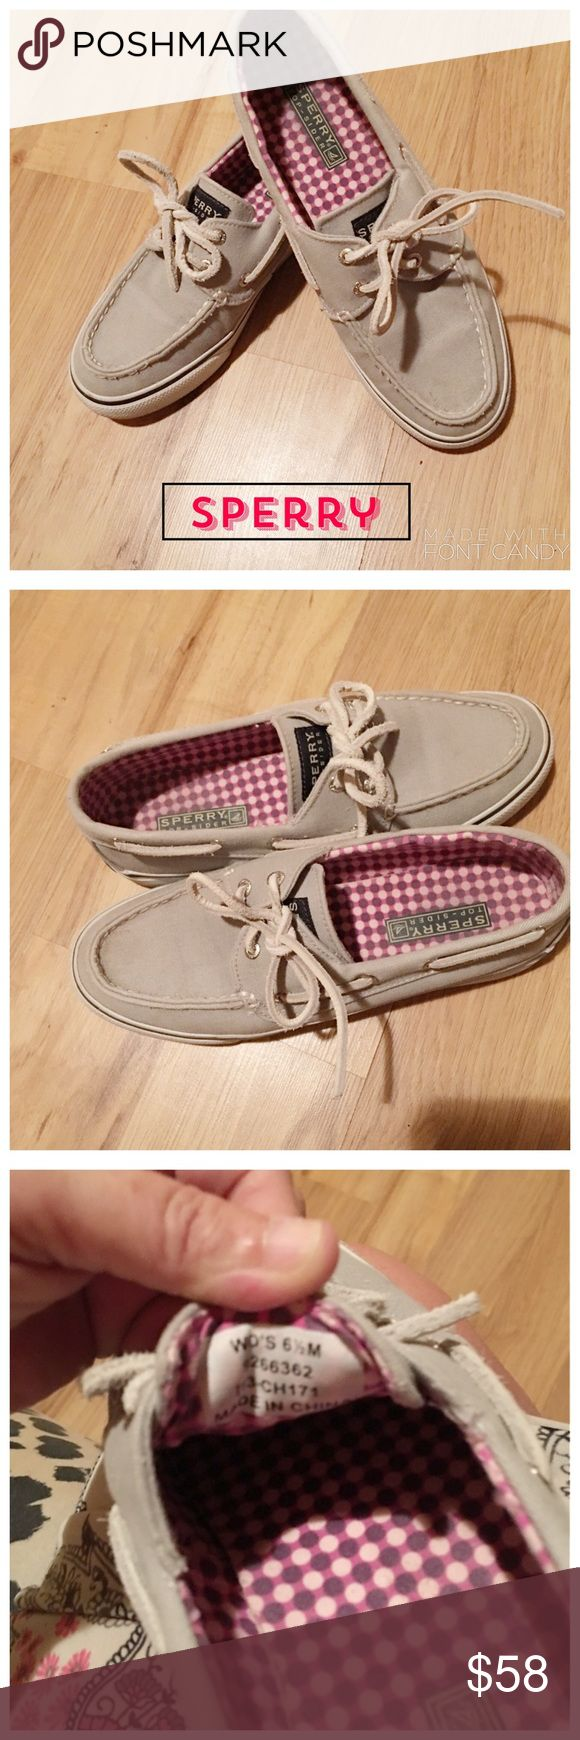 Sperry Loafers Soft light gray in color in excellent condition Sperry Shoes Flats & Loafers